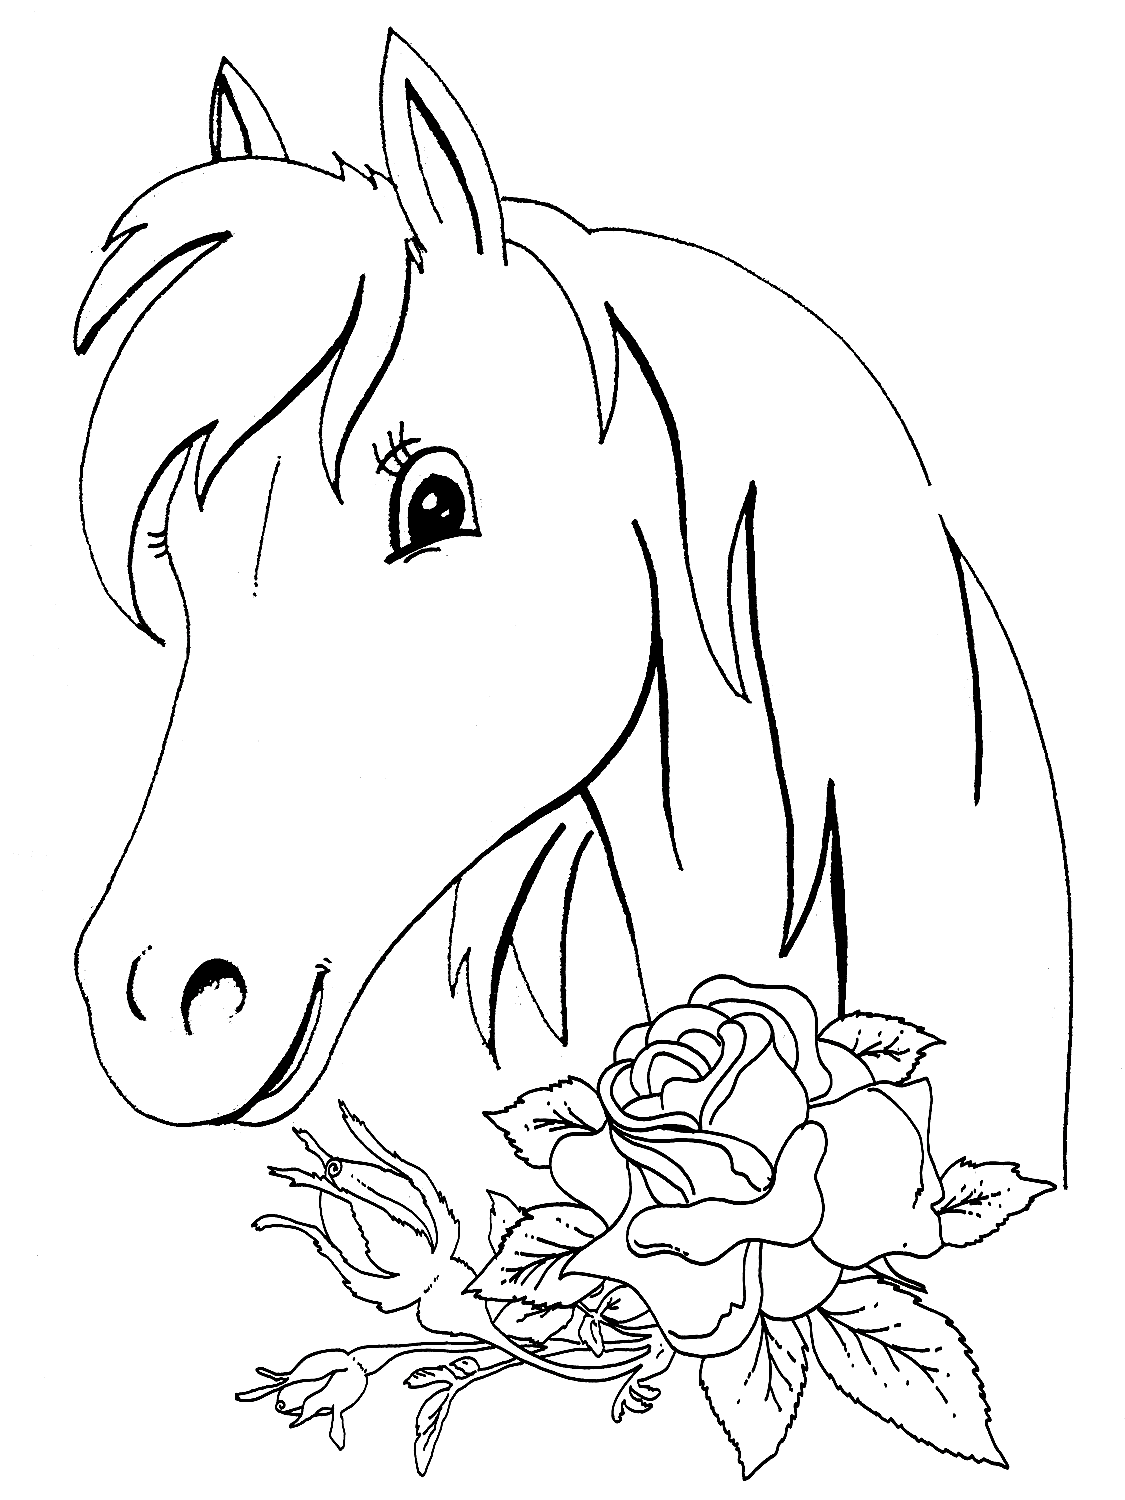 coloring pages printable horses | Pin by sheryl gray on Coloring pages | Horse pictures to ...